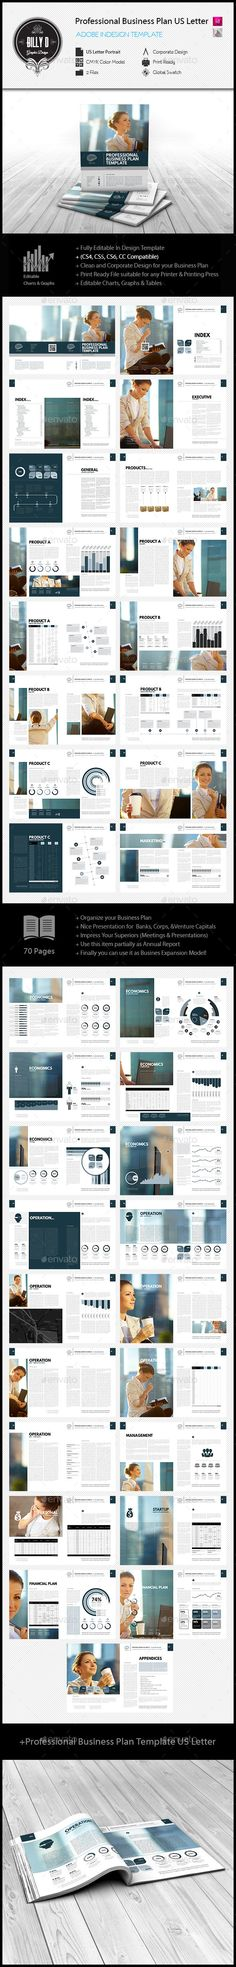 14 Pages A4 Business Proposal Template Graphic Design - business proposal letters